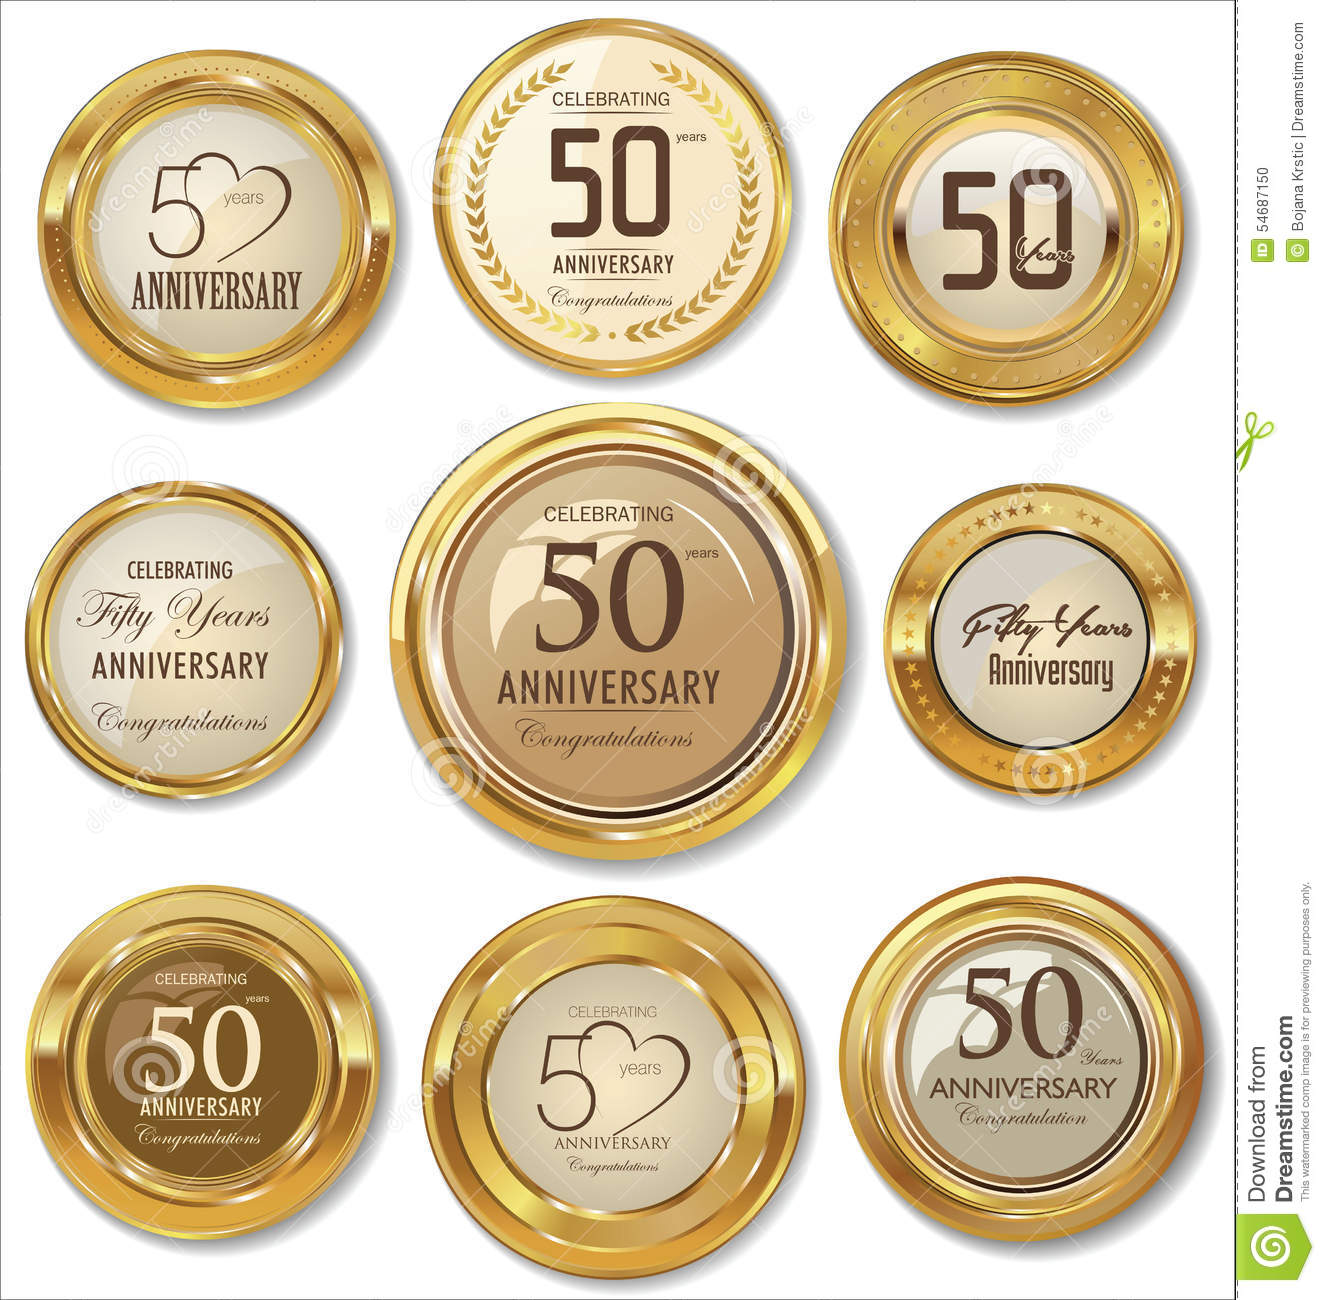 golden anniversary labels 50 years stock illustration